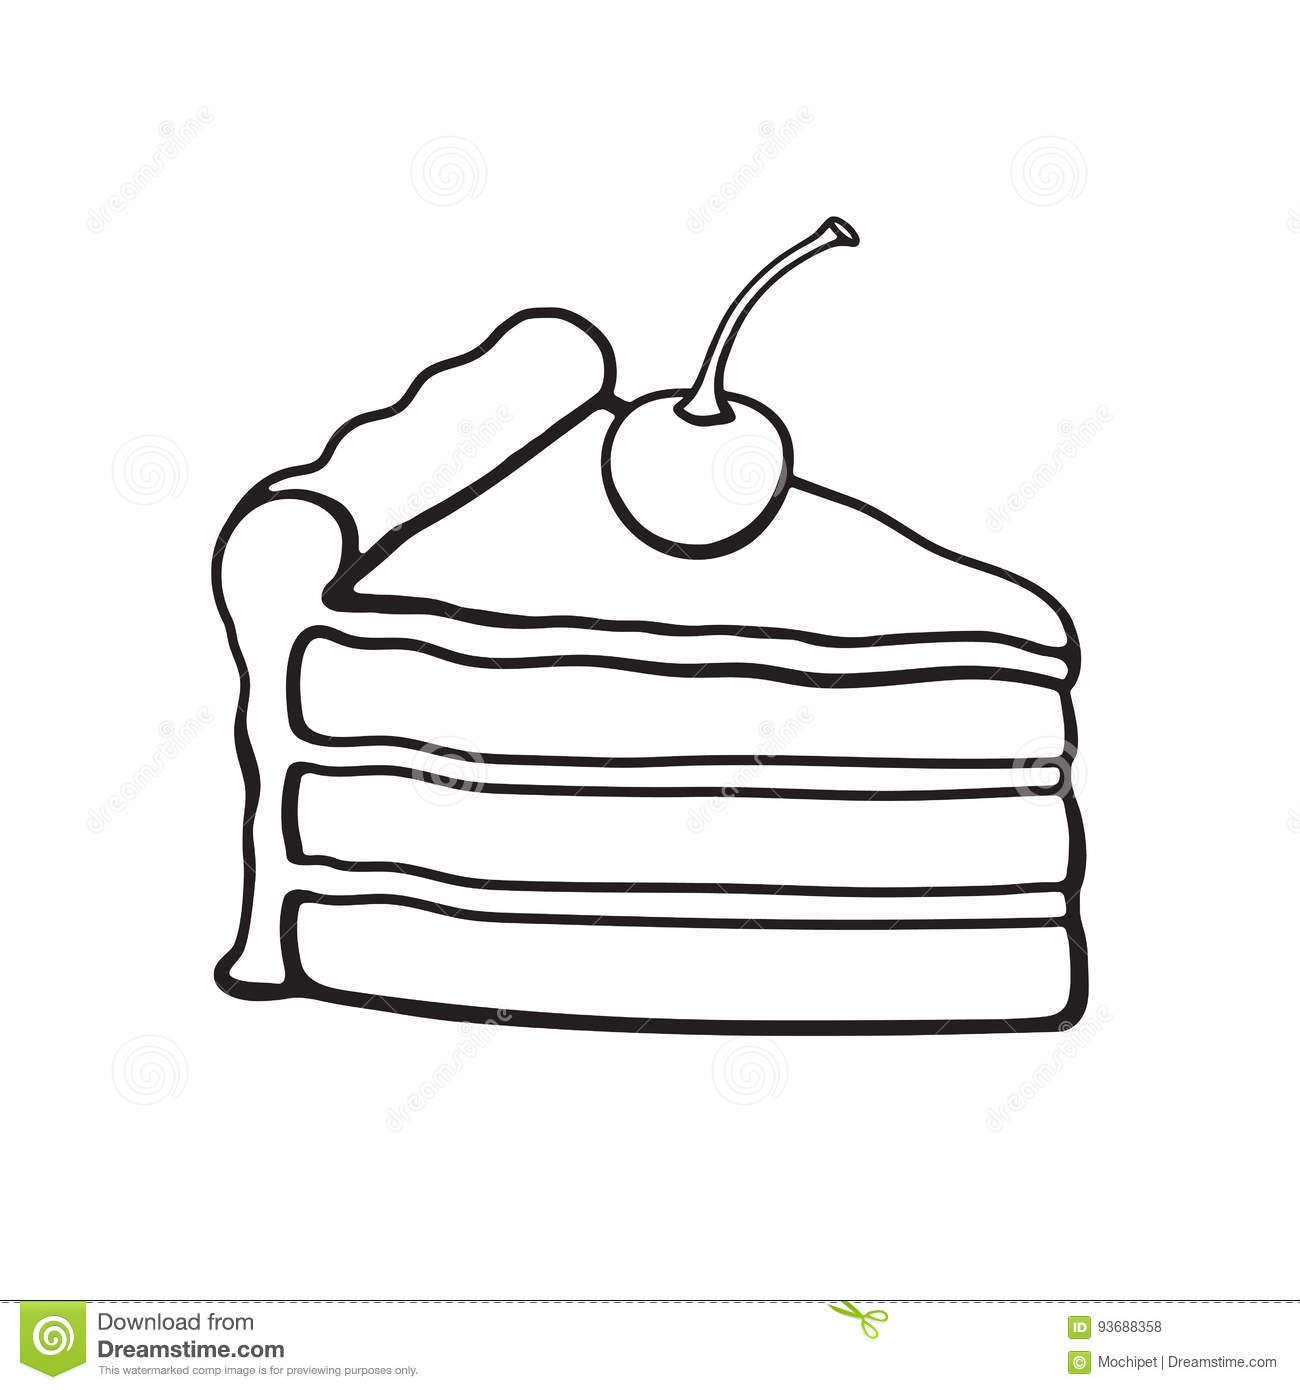 Doodle Of A Piece Of Cake With Cream And Cherry Stock